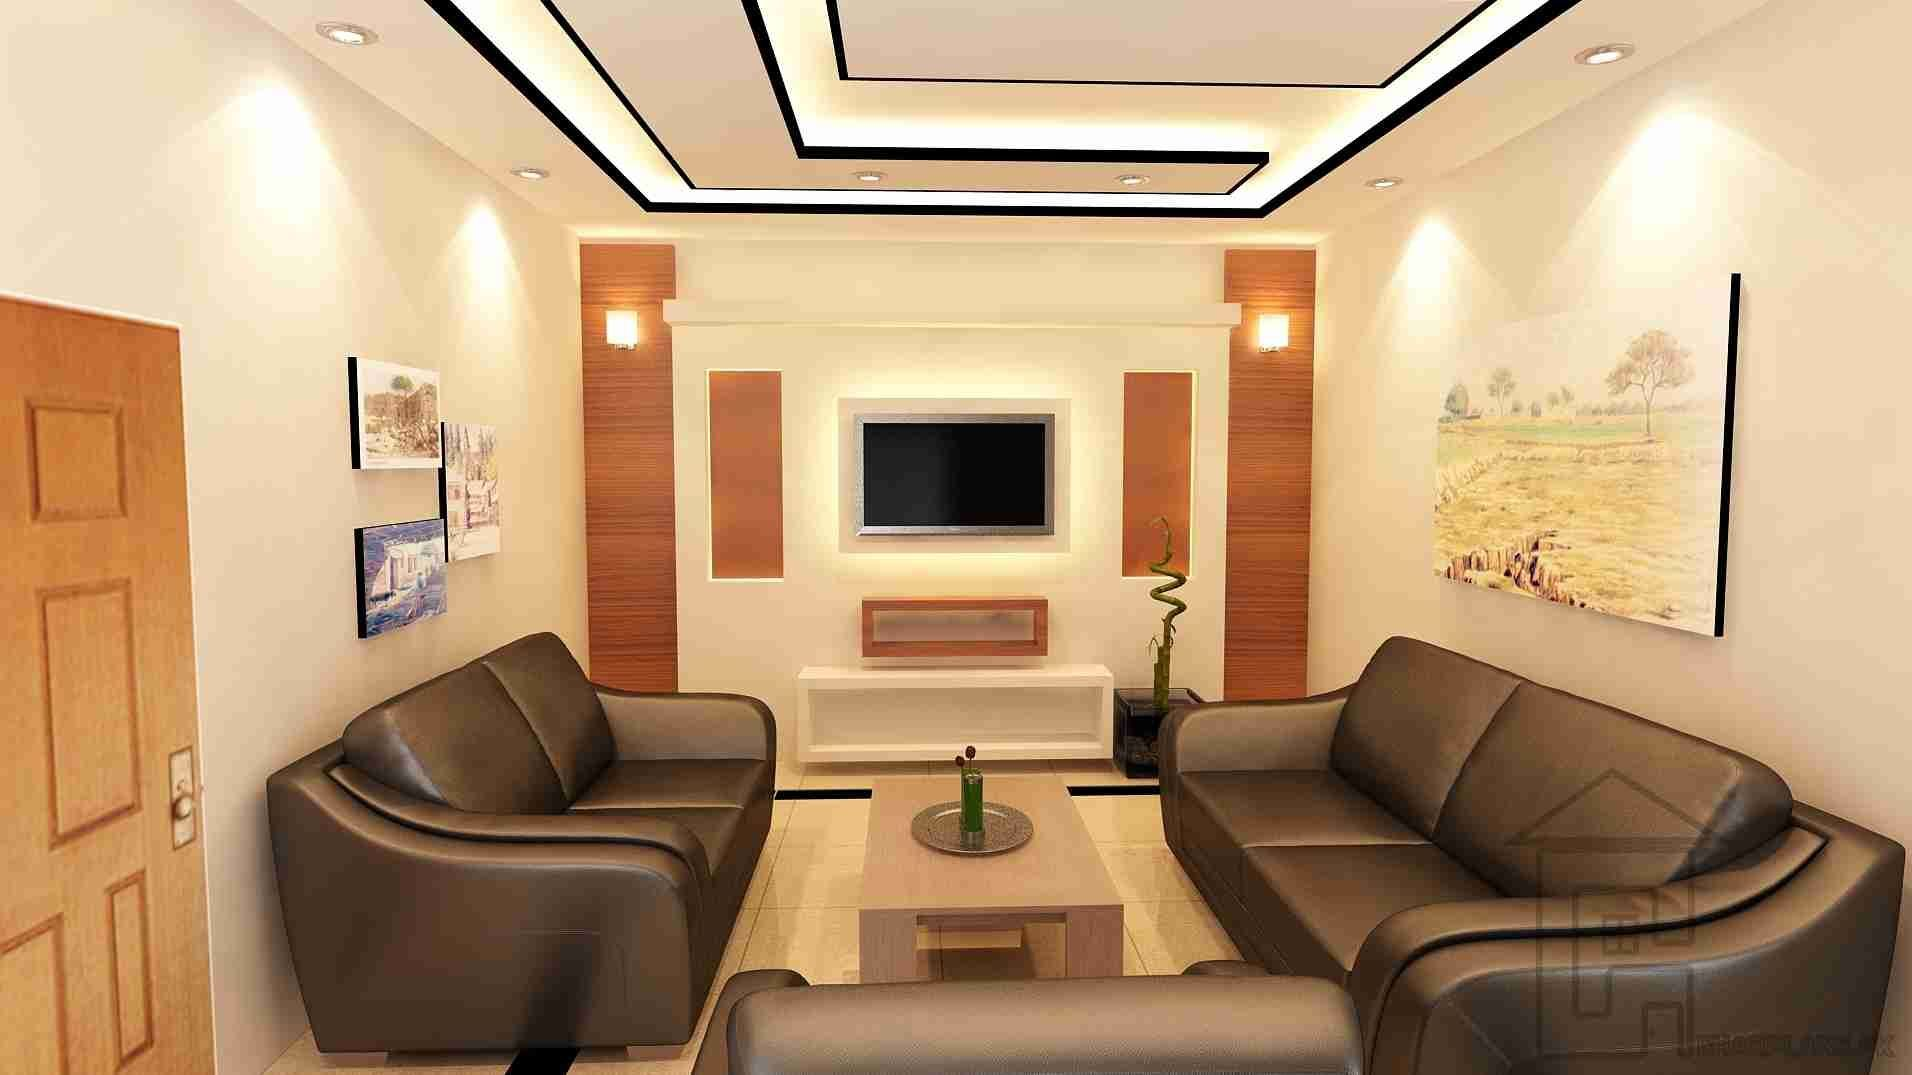 Drawing Room Decoration With A Beautiful Design Settings In 2020 Drawing Room Decor Drawing Room Design Modern Living Room Interior #tv #settings #in #living #room